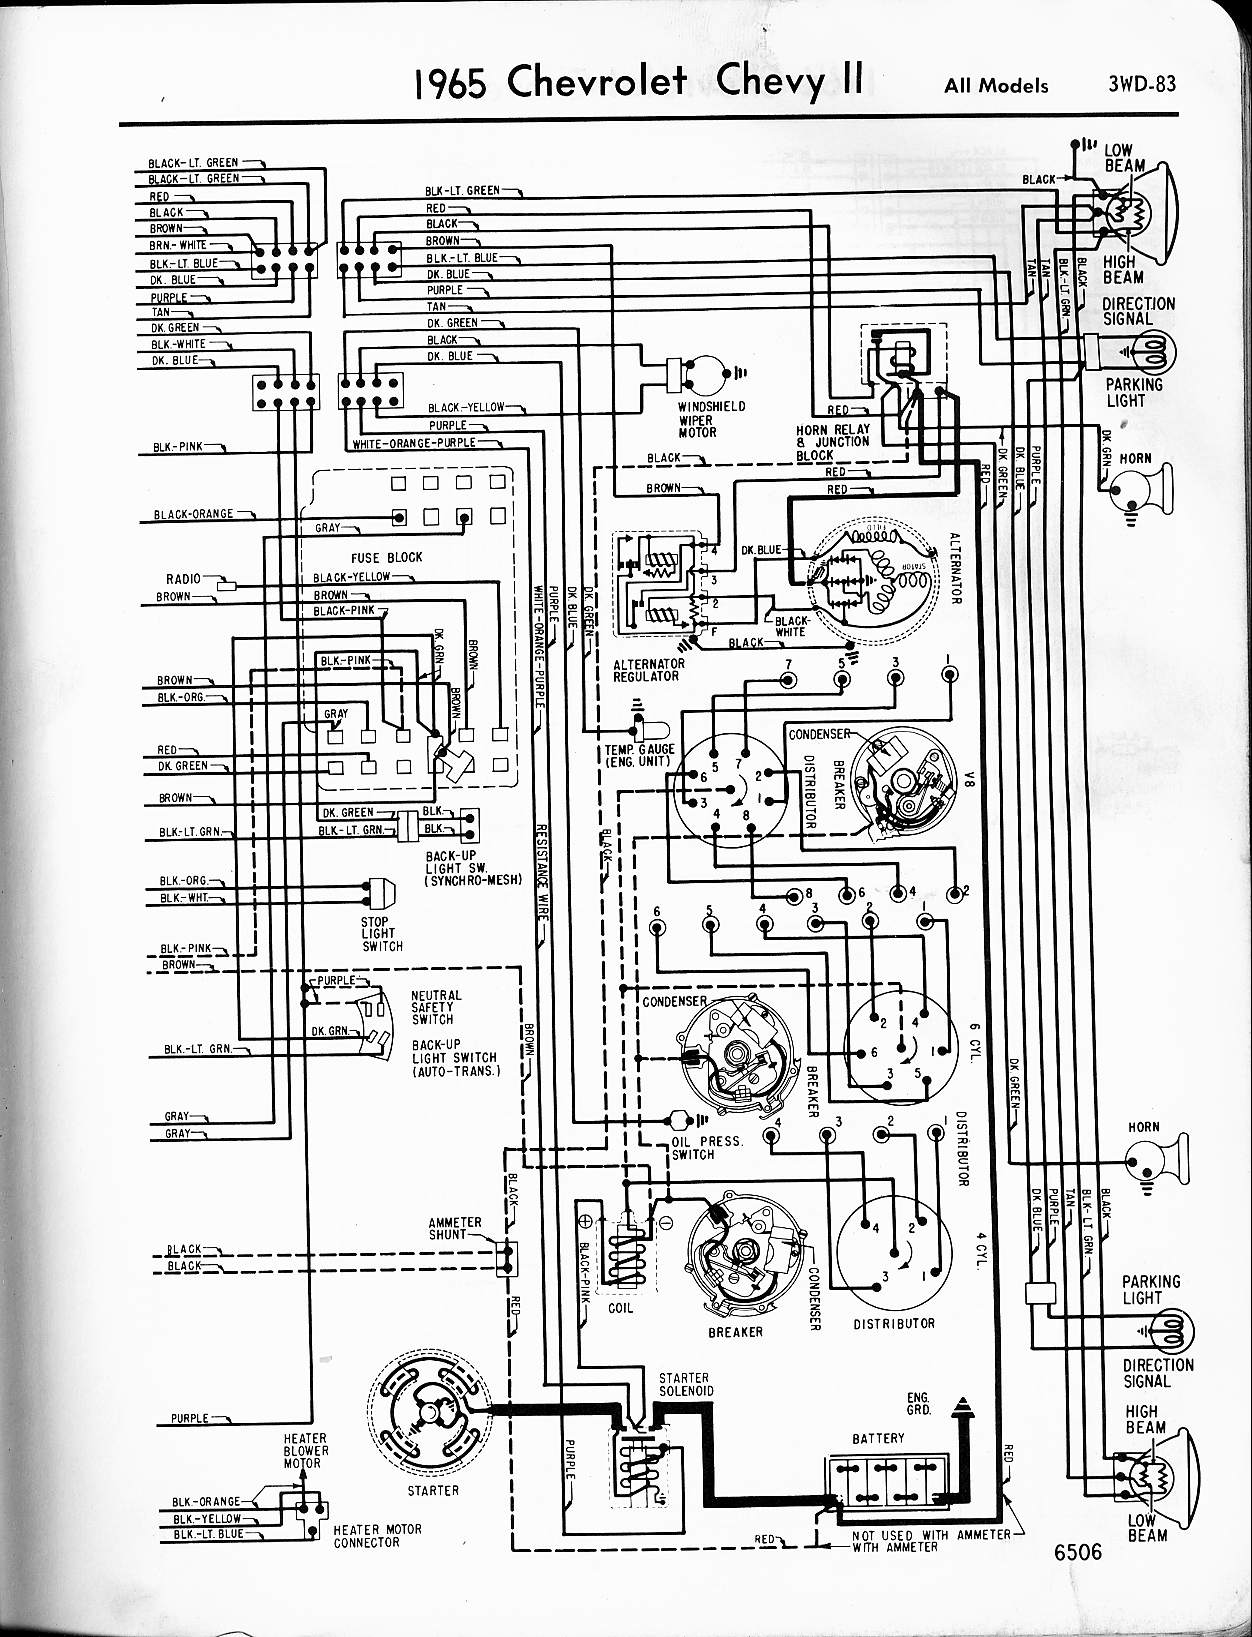 MWireChev65_3WD 083 chevy diagrams 1965 el camino wiring diagram at bayanpartner.co